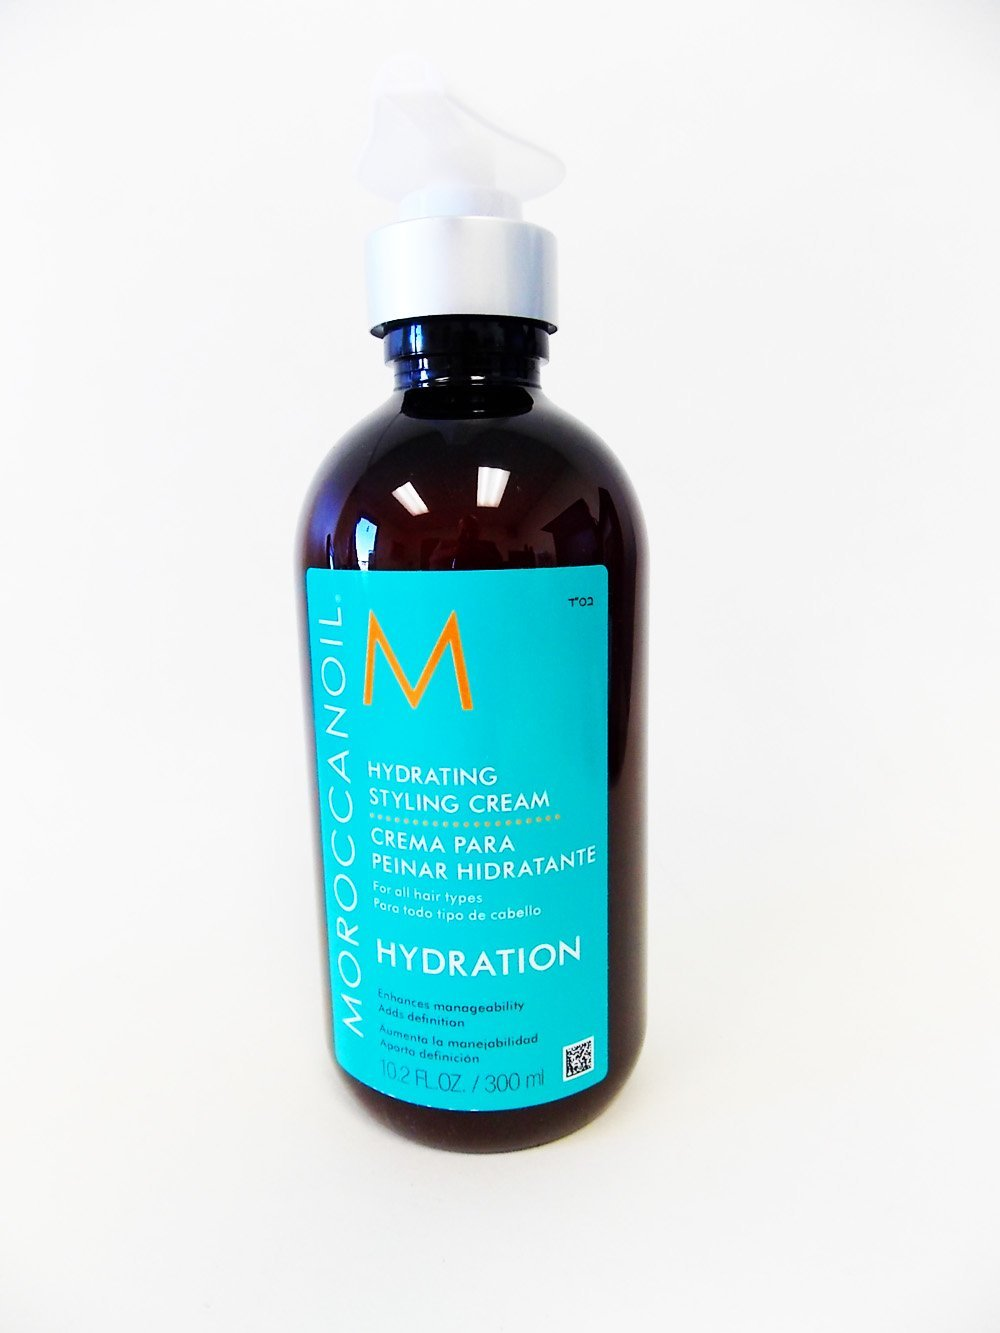 Moroccanoil Hydrating Styling Cream, 10.2 fl. oz. by MOROCCANOIL